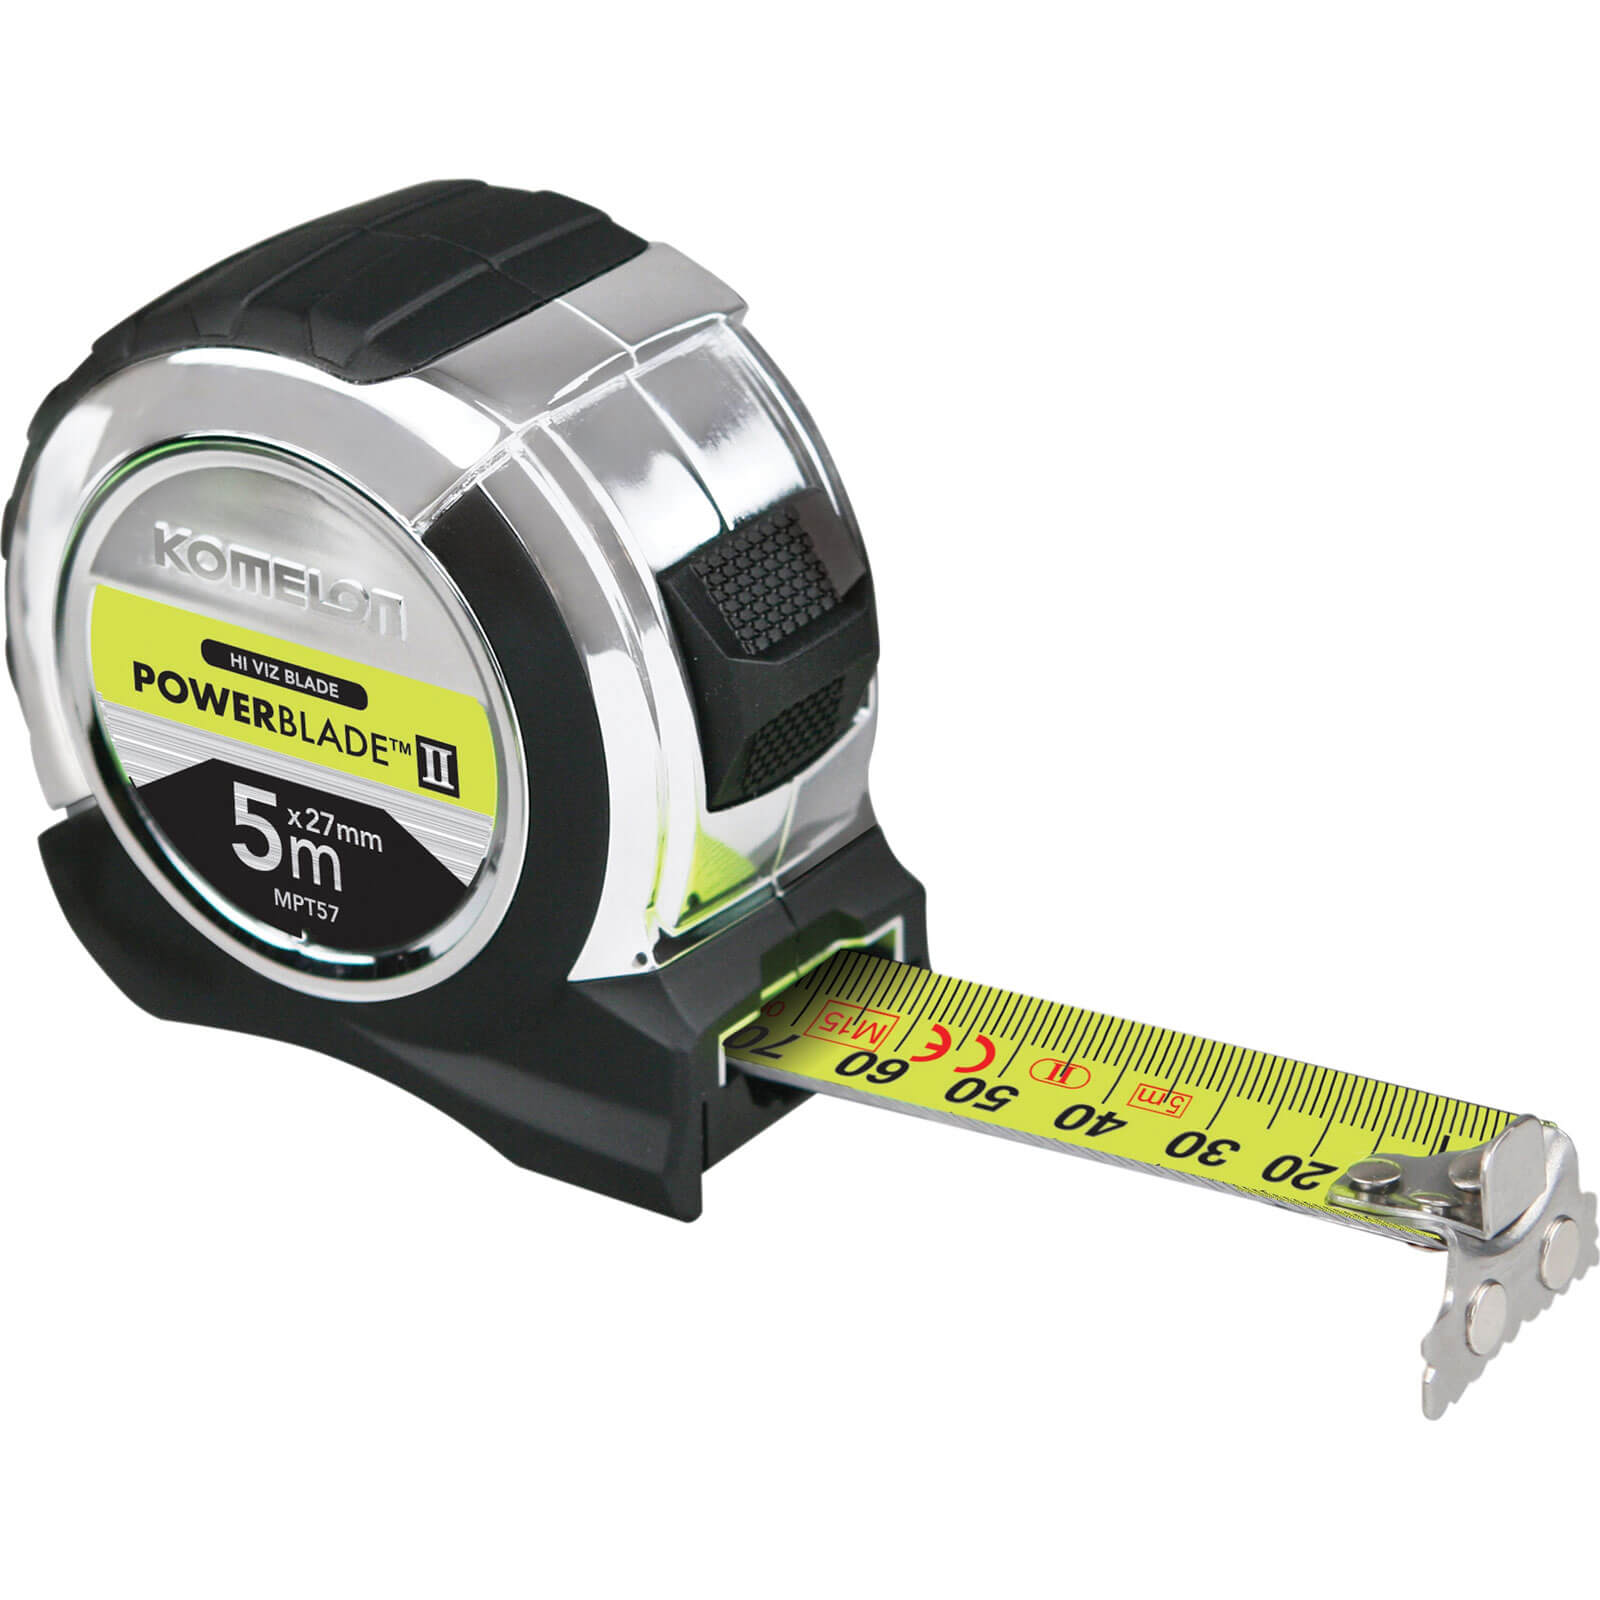 Image of Komelon Powerblade Tape Measure Metric 5m 27mm